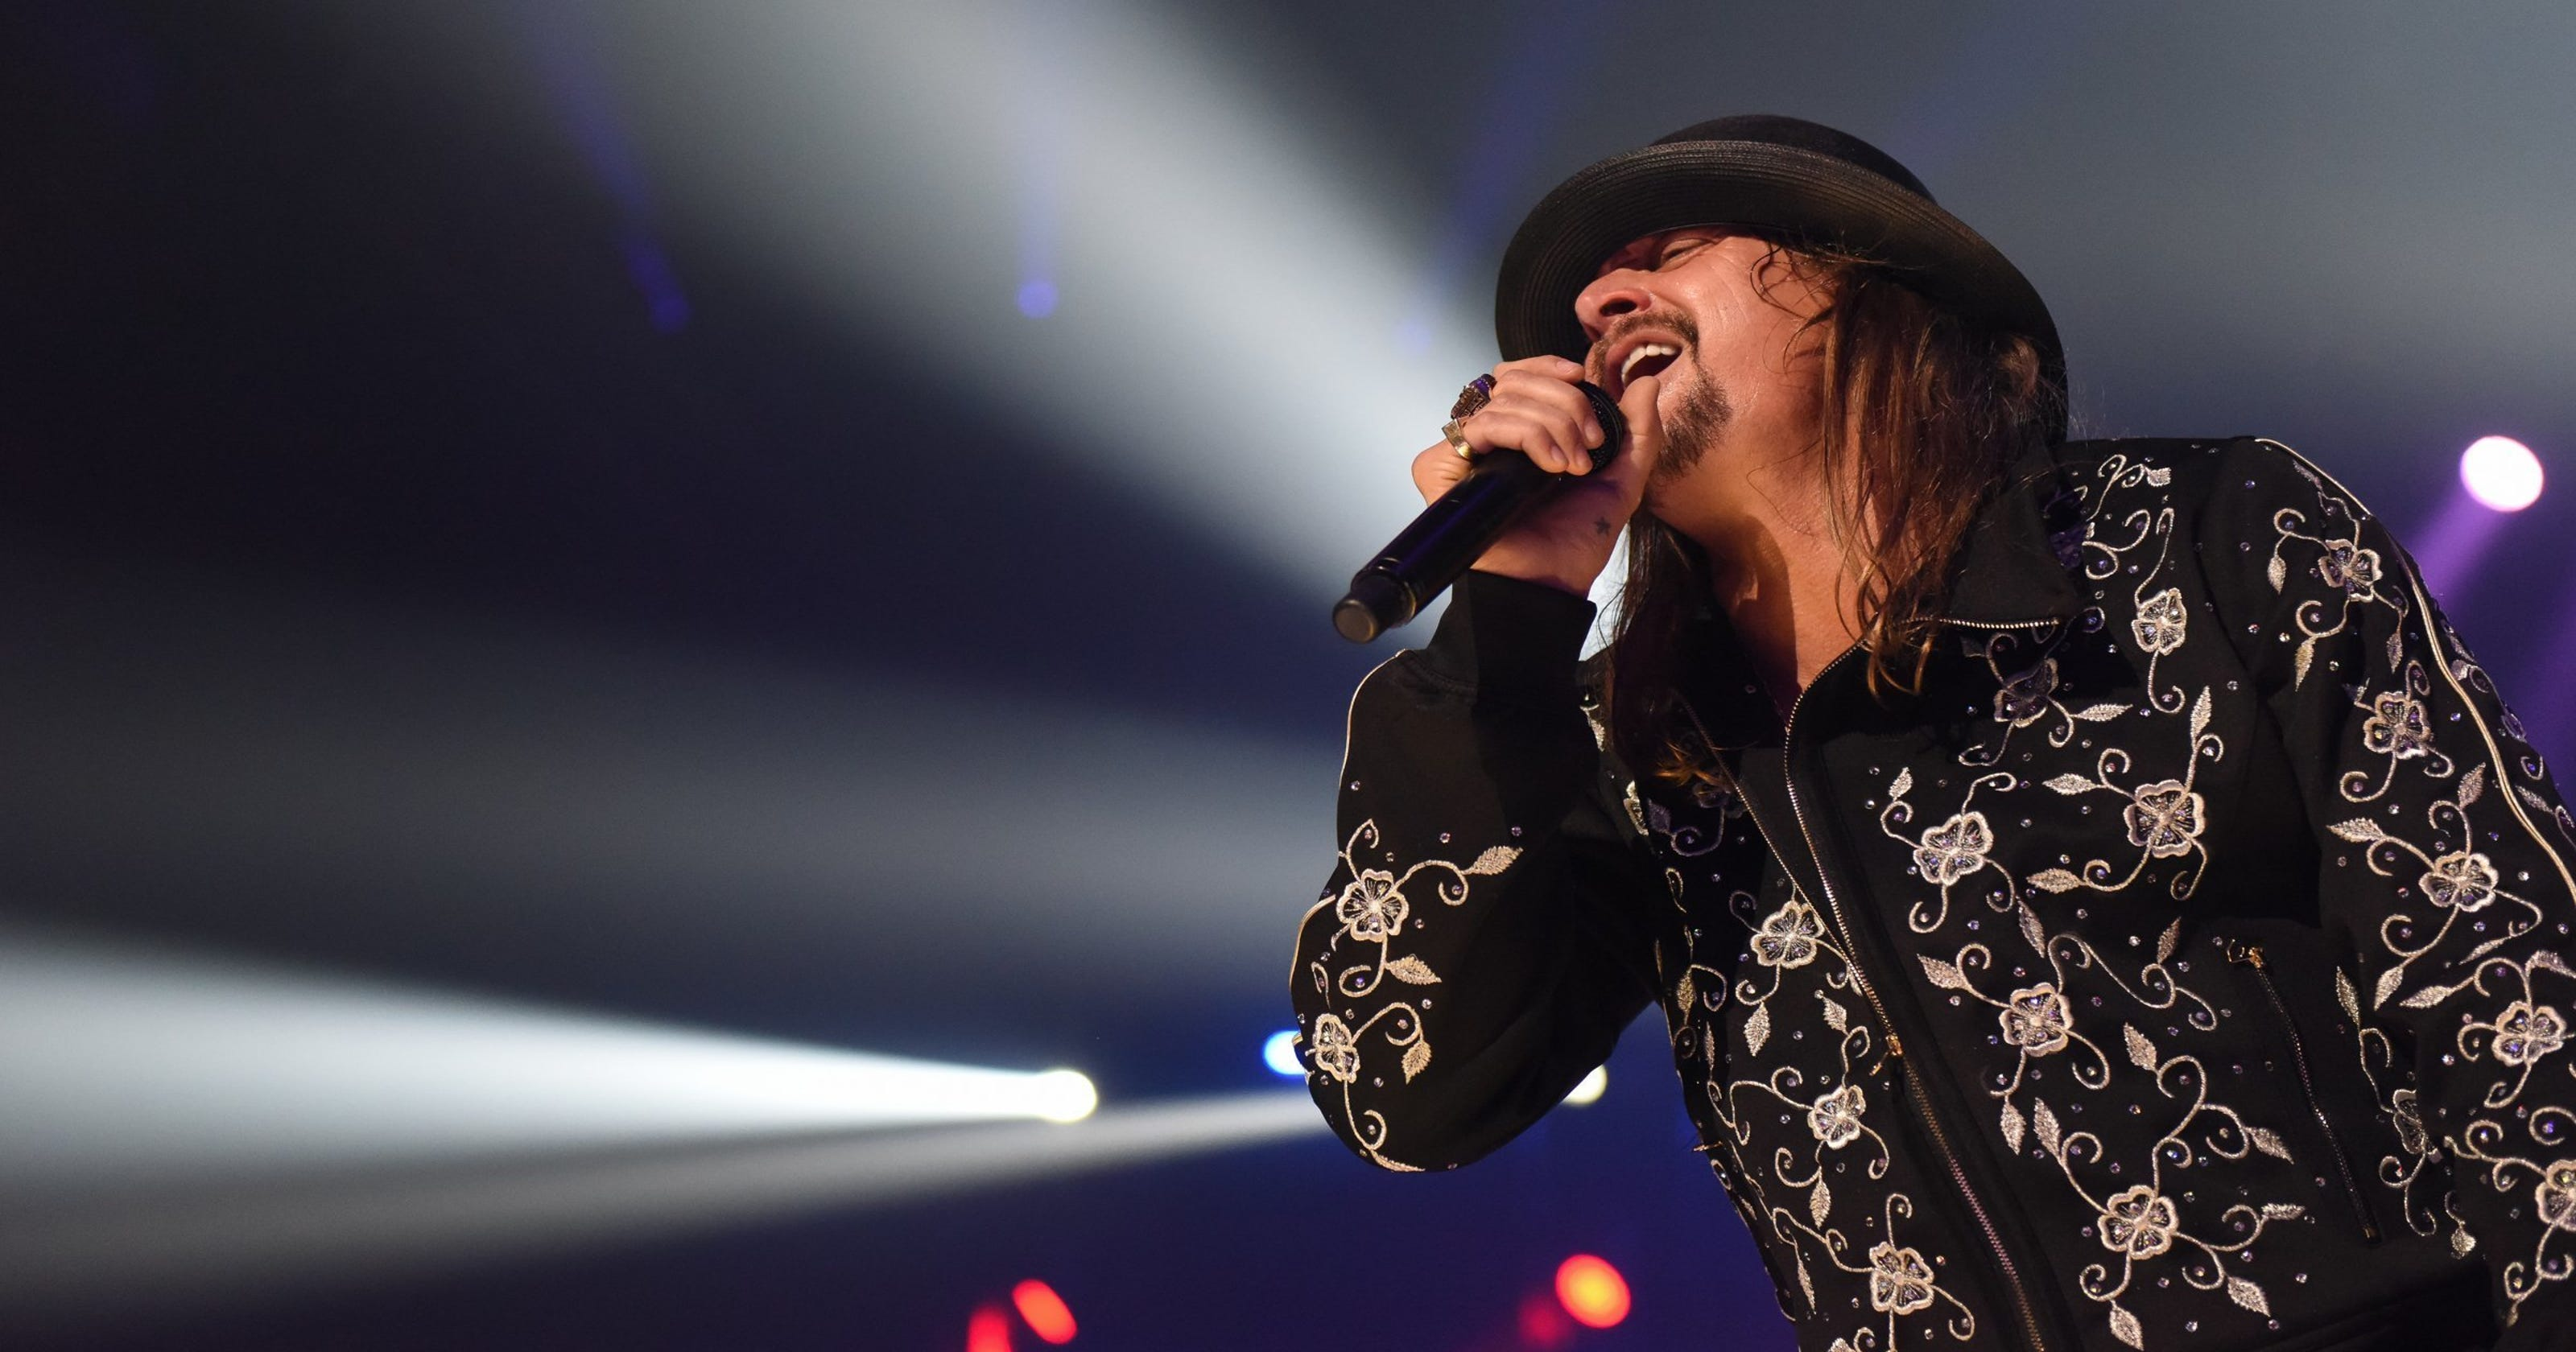 Kid Rock is a complicated human being